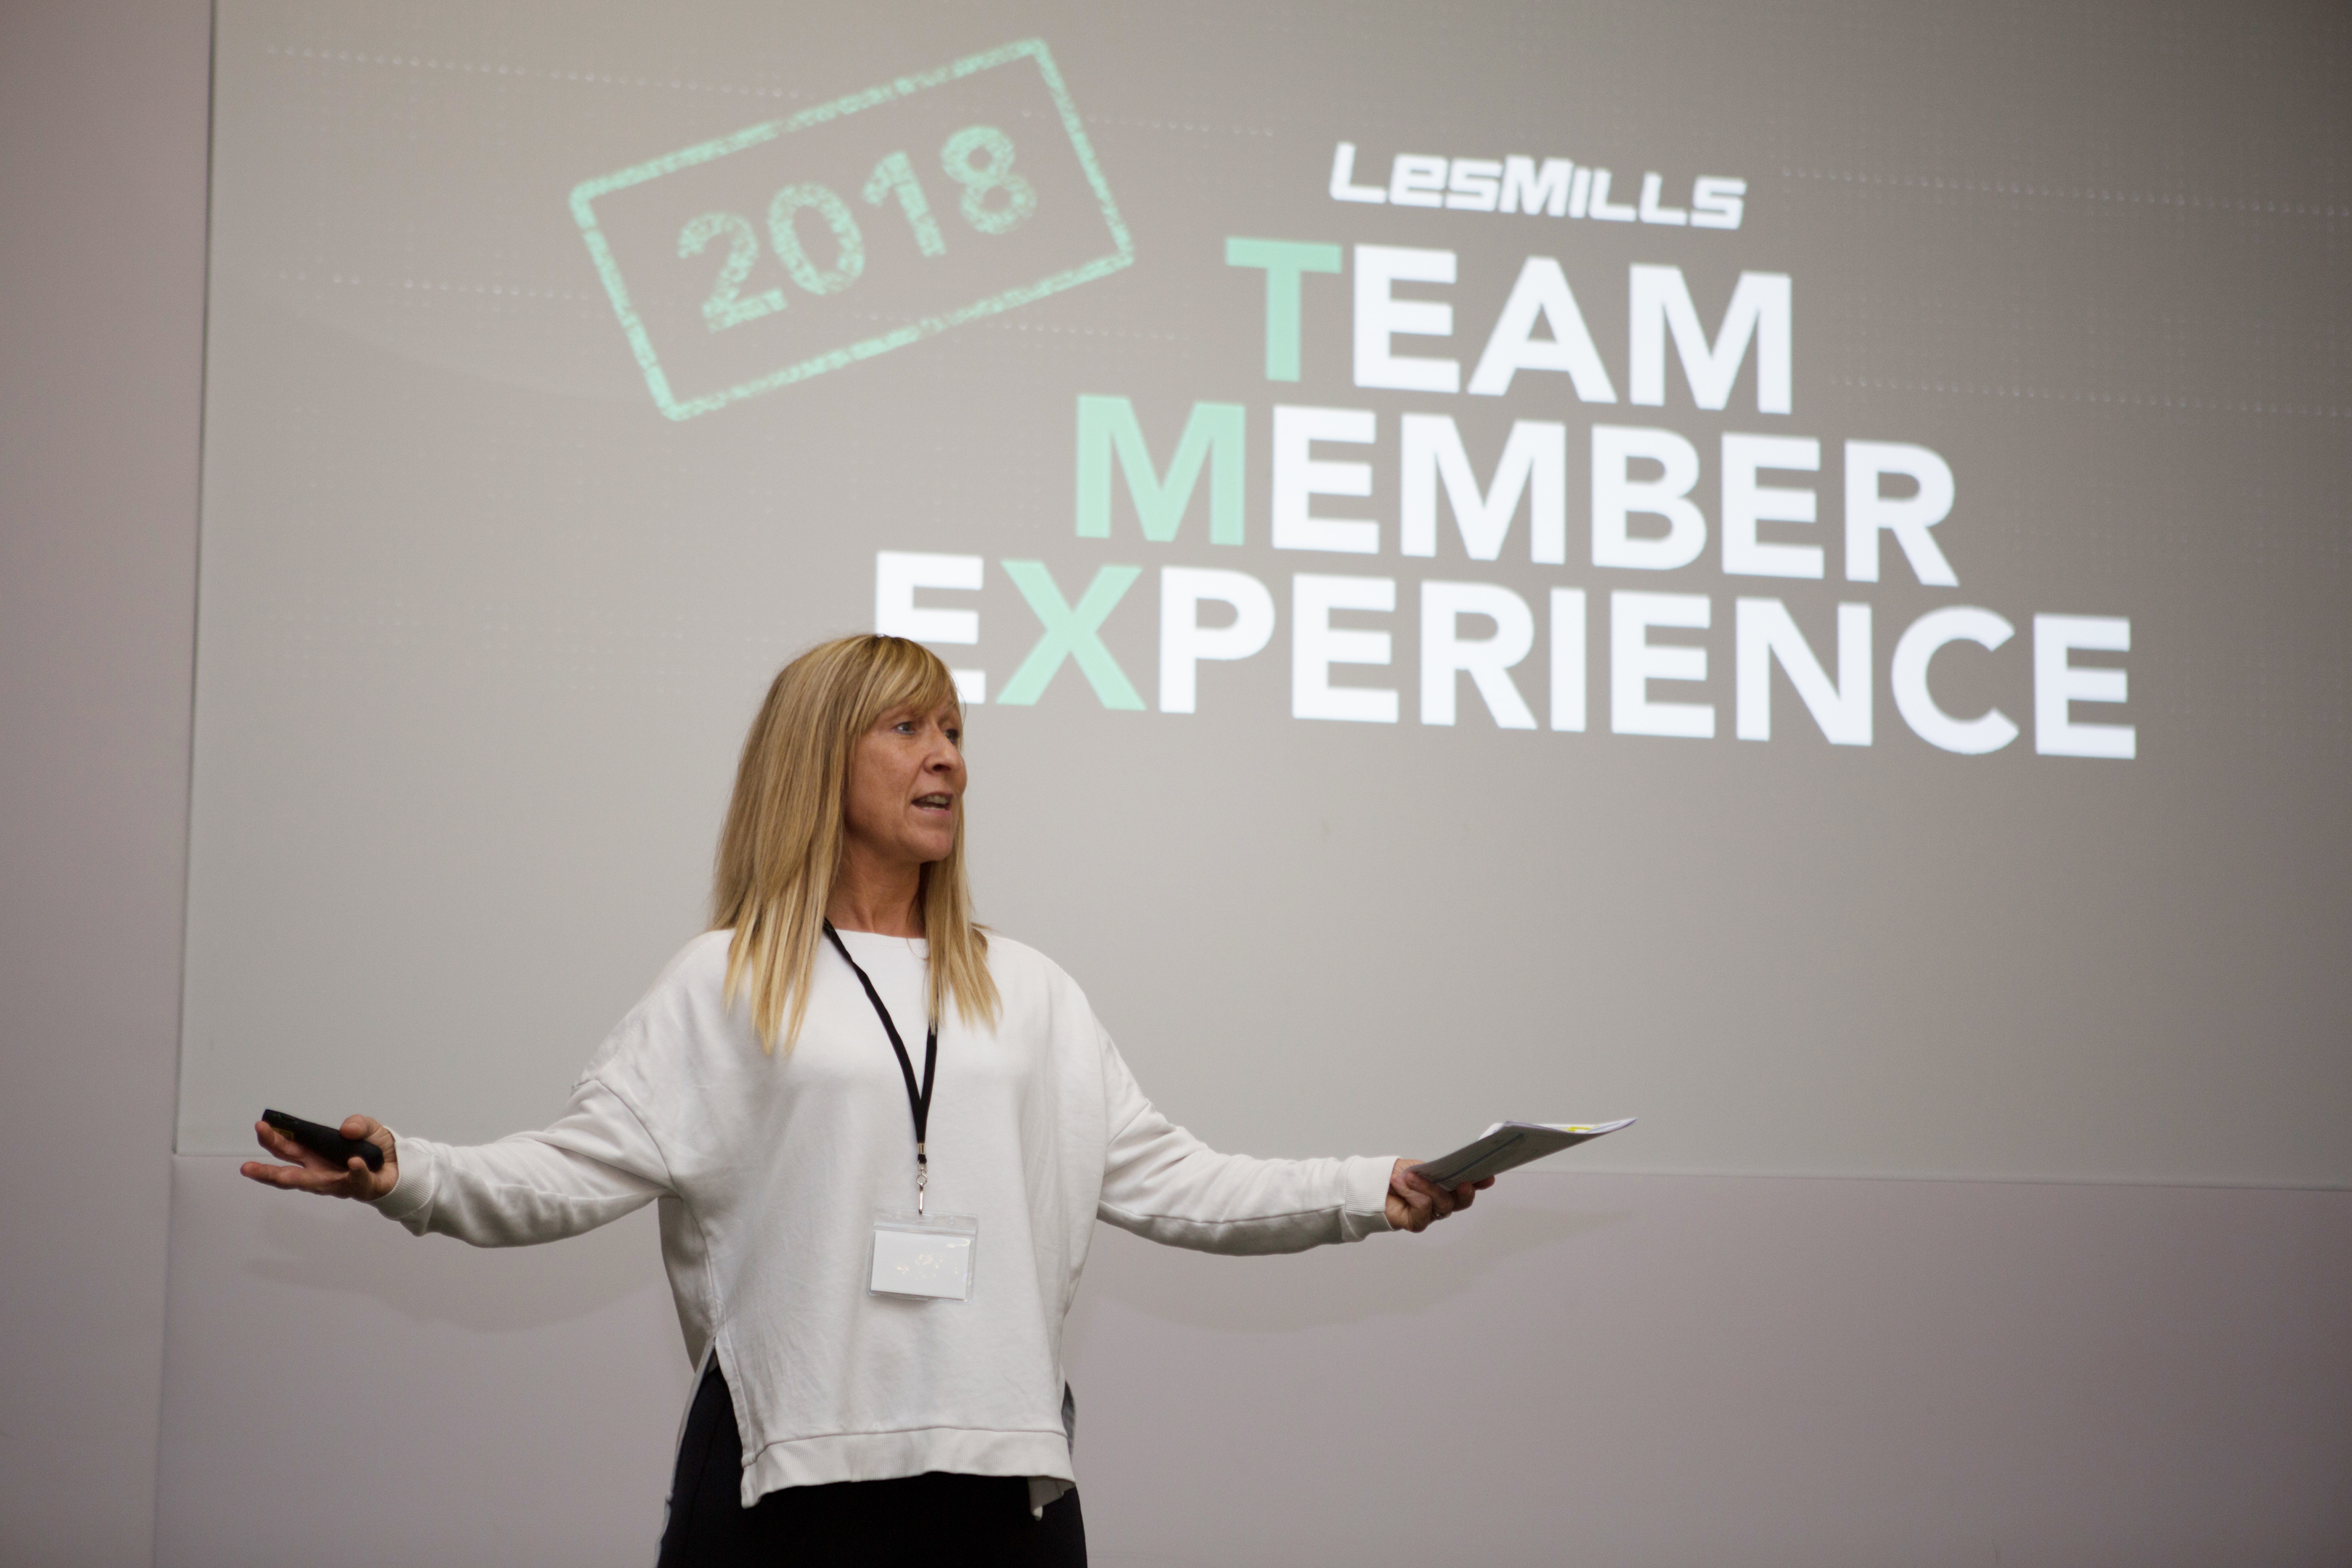 Wendy Coulson - How to build and maintain a great team culture